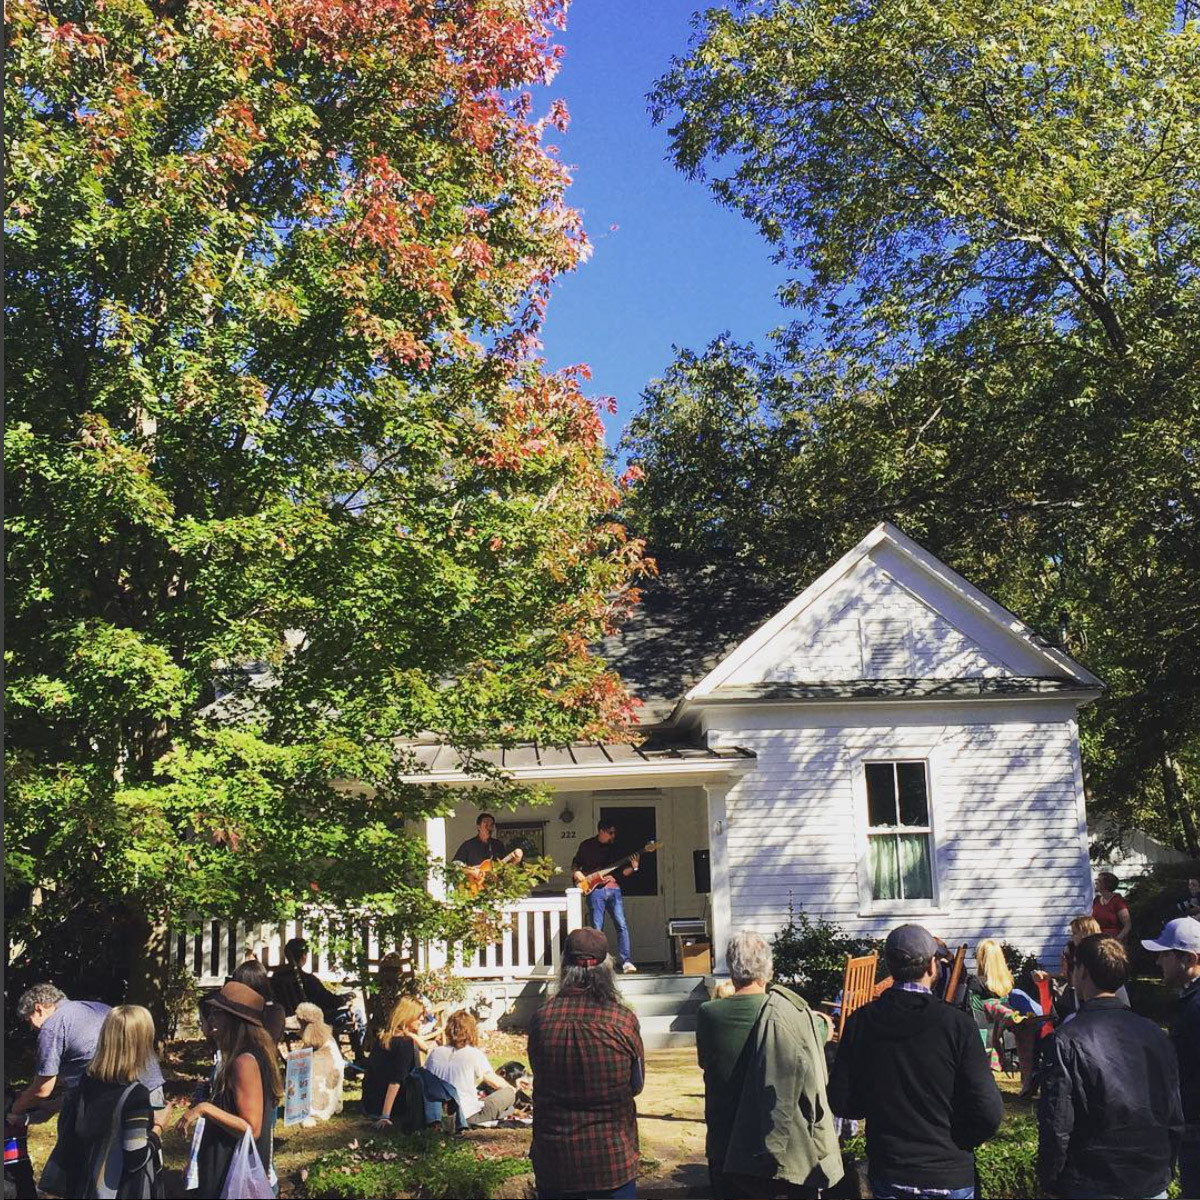 Diy Community  Porchfest Your Guide to a DIY munity Building Good